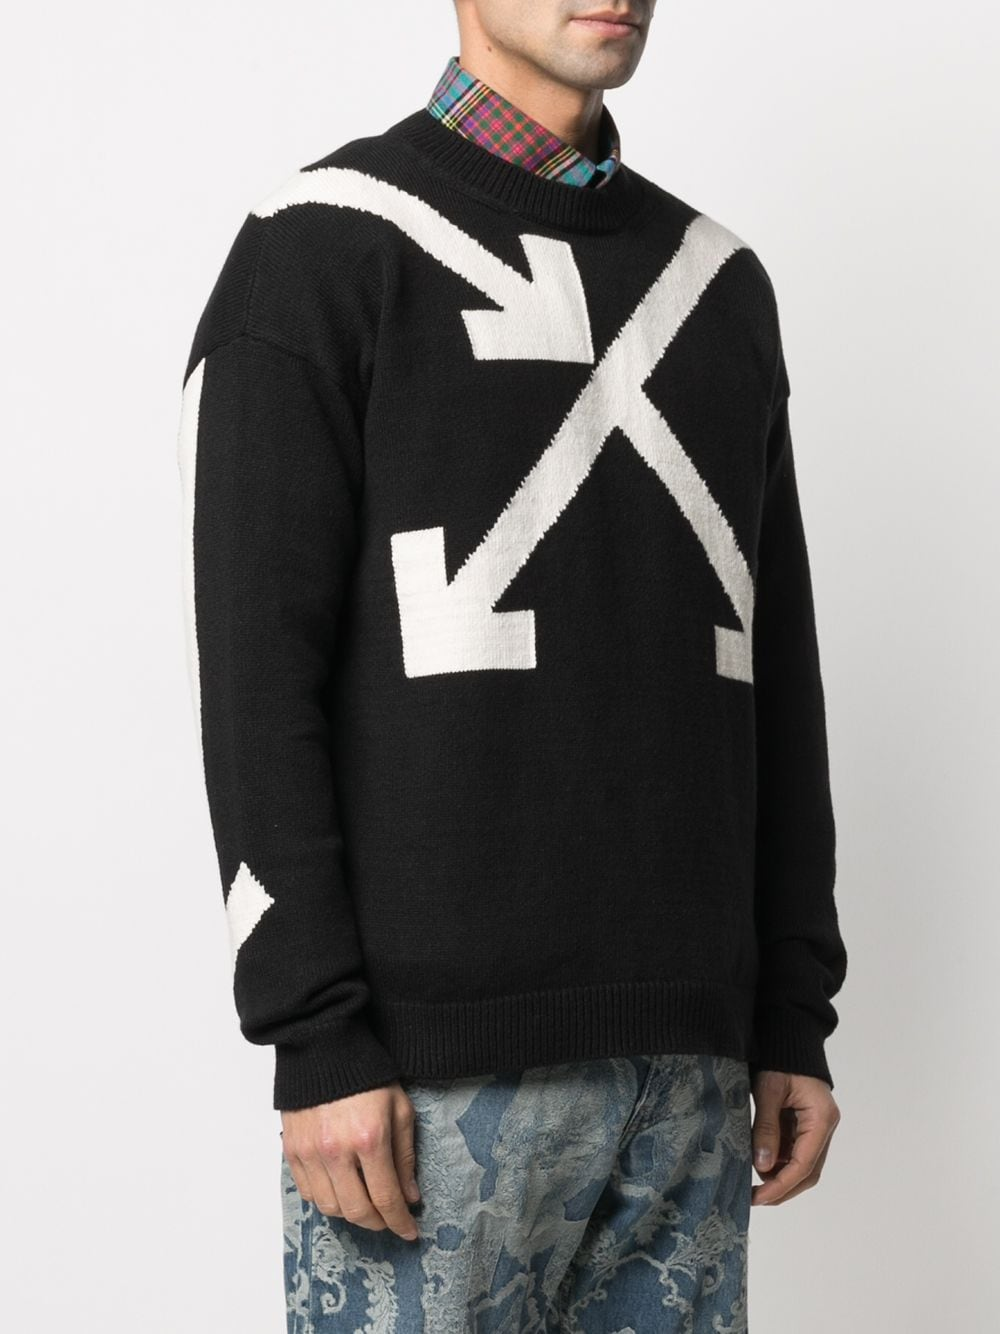 OFF-WHITE MEN TWISTED ARROWS KNIT CREWNECK